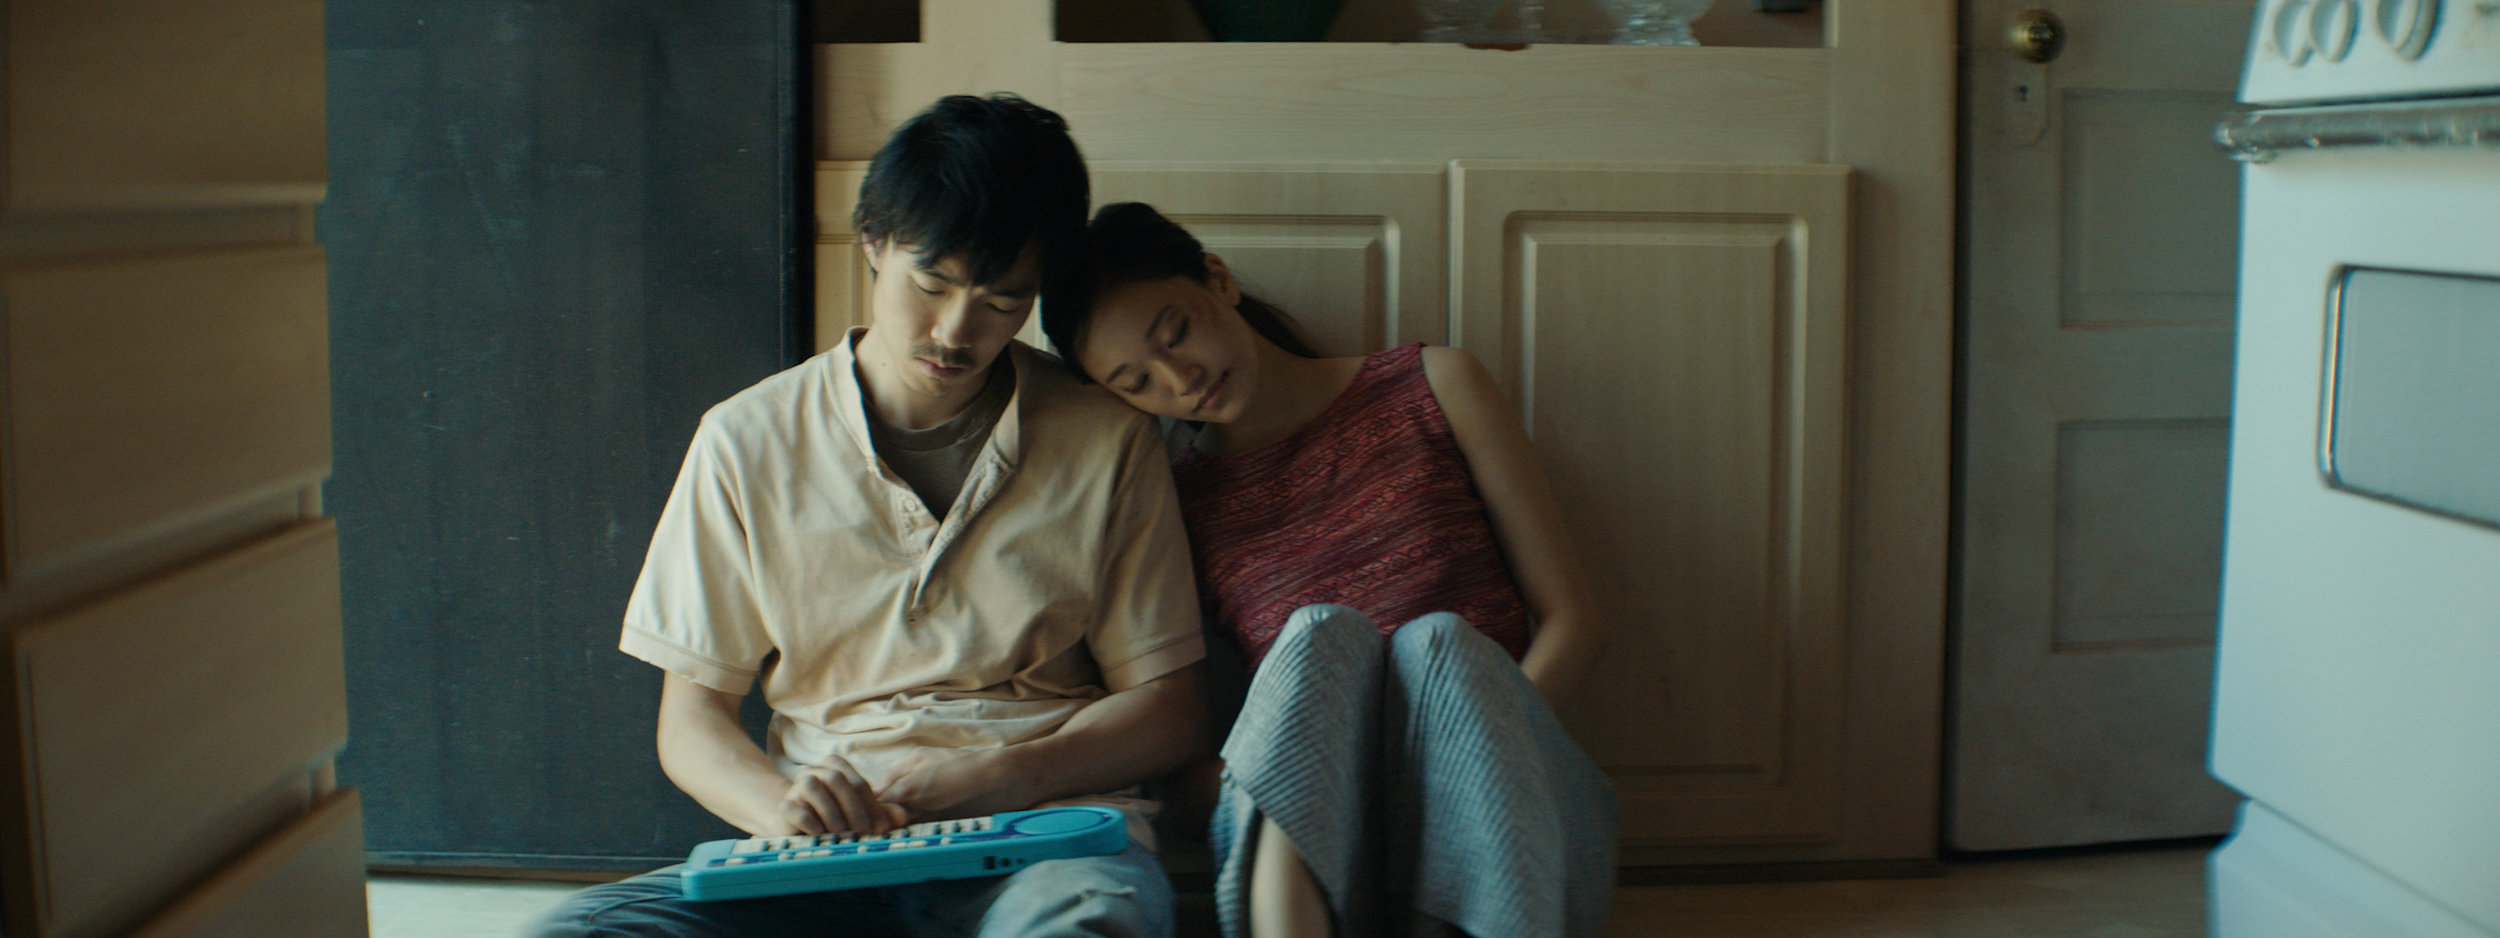 """Siblings (Teddy Lee, left, and Tiffany Chu) reconnect in Justin Chon's """"Ms. Purple,"""" an official selection in the U.S. Dramatic Competition of the 2019 Sundance Film Festival. (Photo by Ante Chen, courtesy of the Sundance Institute)"""